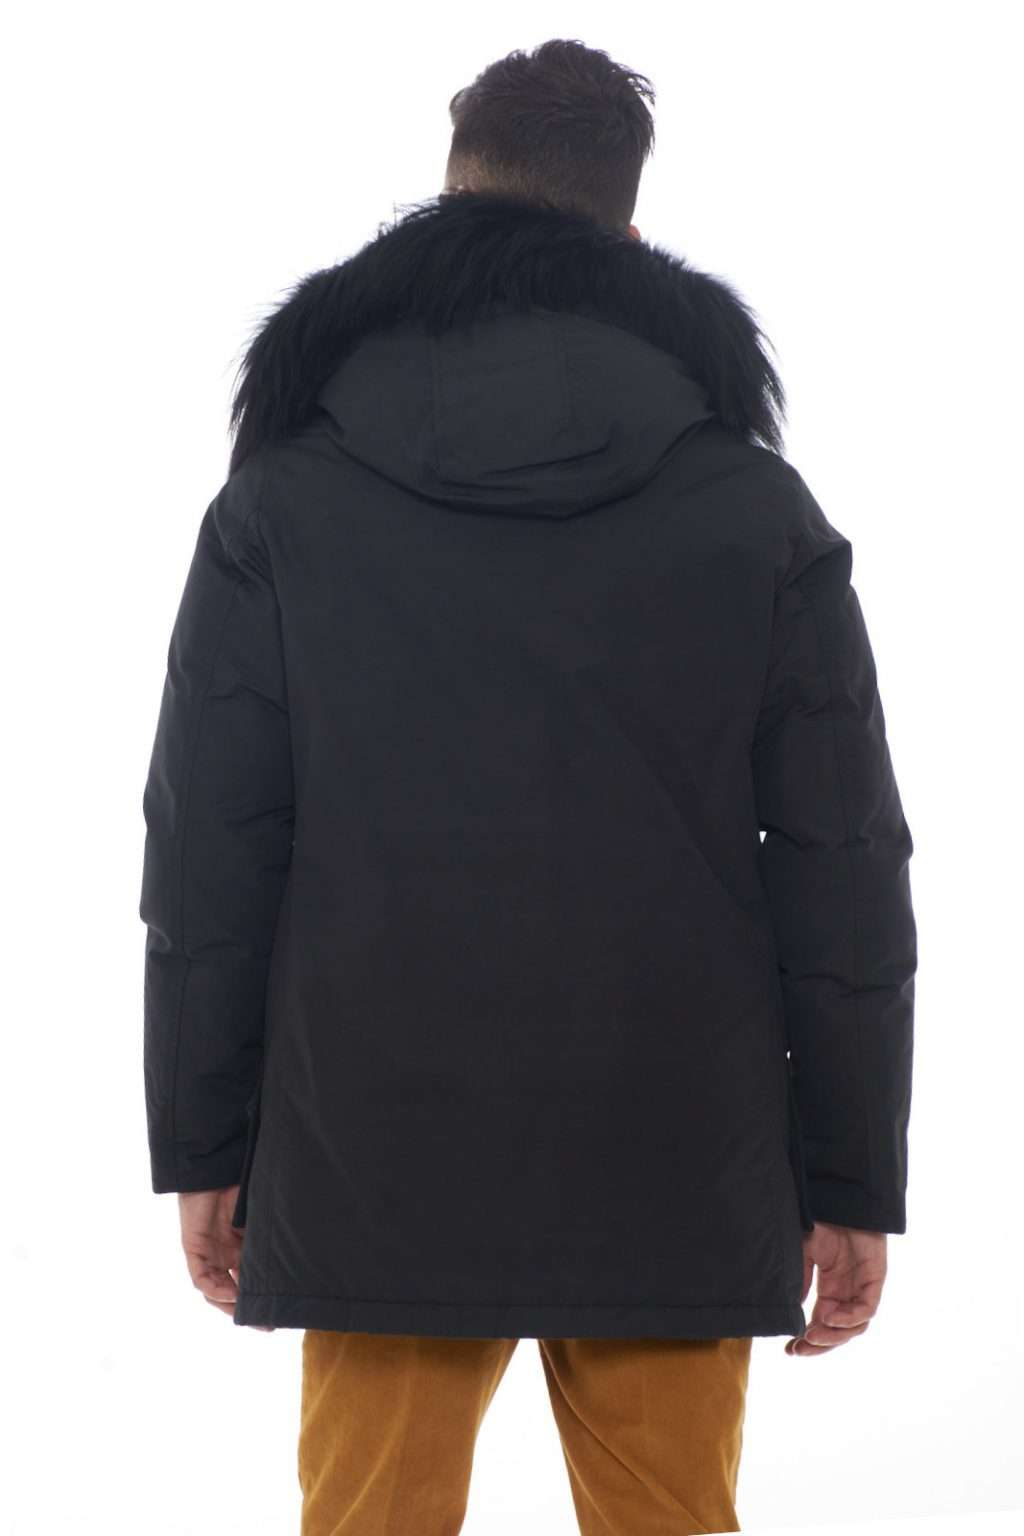 https://www.parmax.com/media/catalog/product/a/i/AI-outlet_parmax-parka-uomo-Woolrich-WOCPS2912-C.jpg